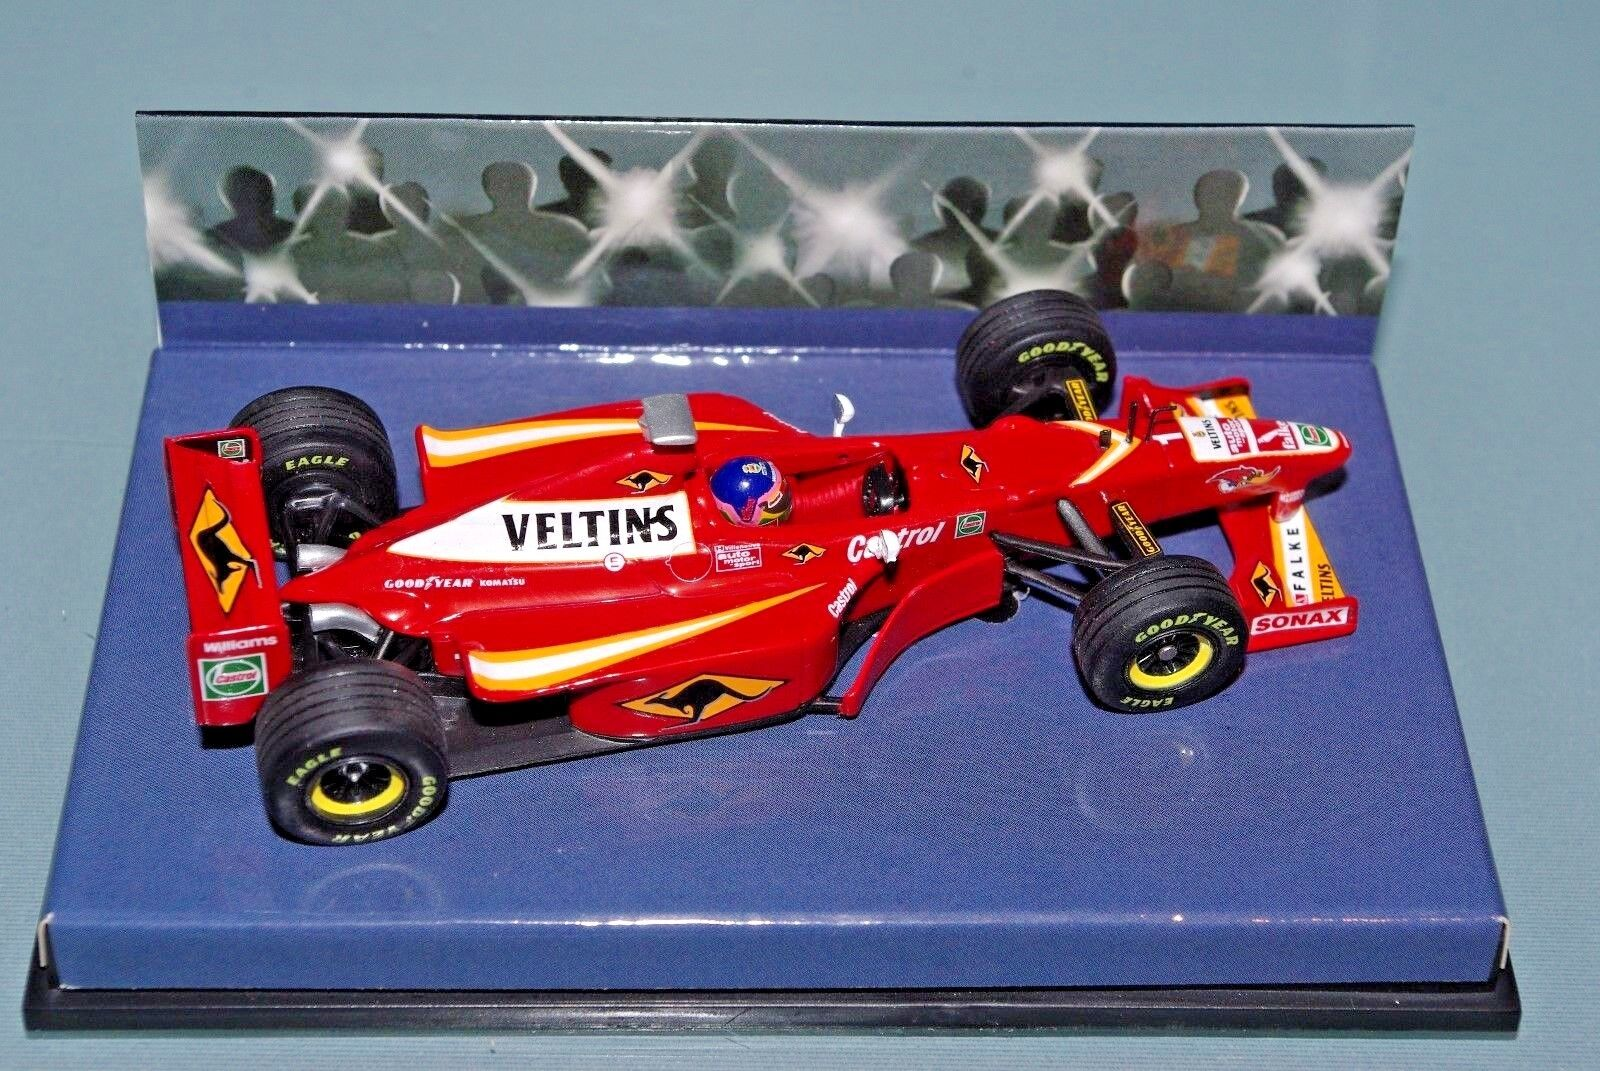 Minichamps F1 1 43 Williams Mecachrome FW20 Villeneuve  1 - PAPARAZZI Edition